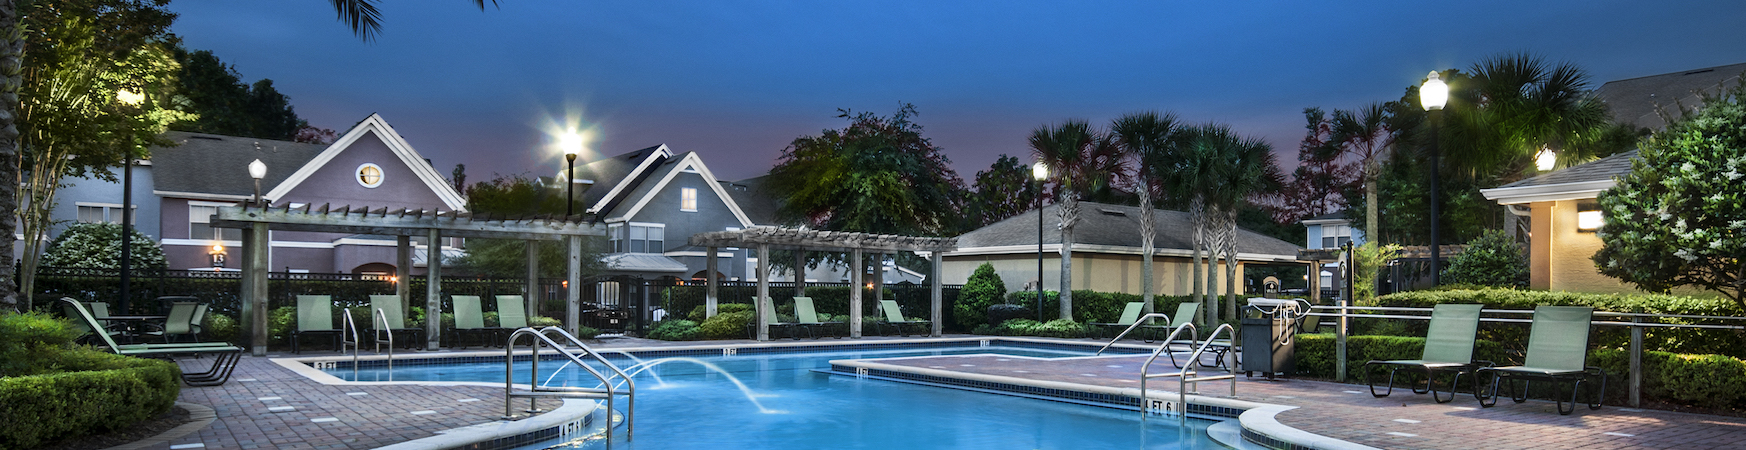 Uptown Village of Townsend | Real Estate in 3780 NW 24th Boulevard - Gainesville FL - Reviews - Photos - Phone Number